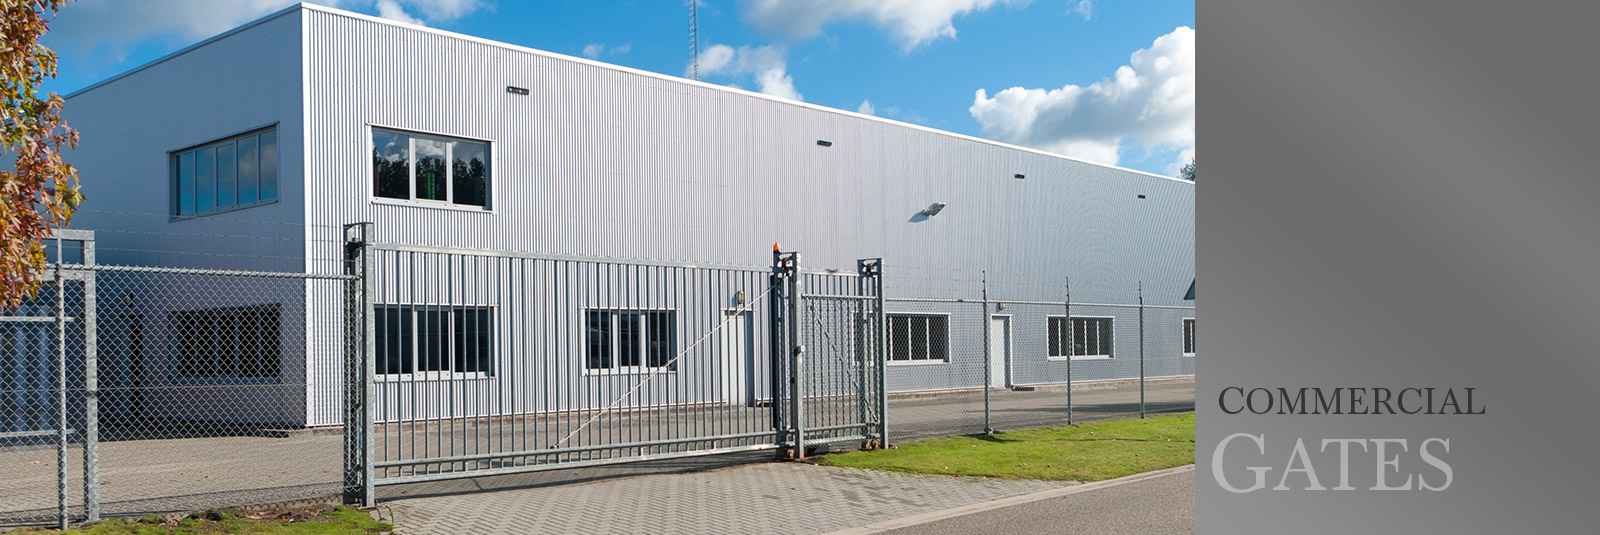 Commercial Electric Gates